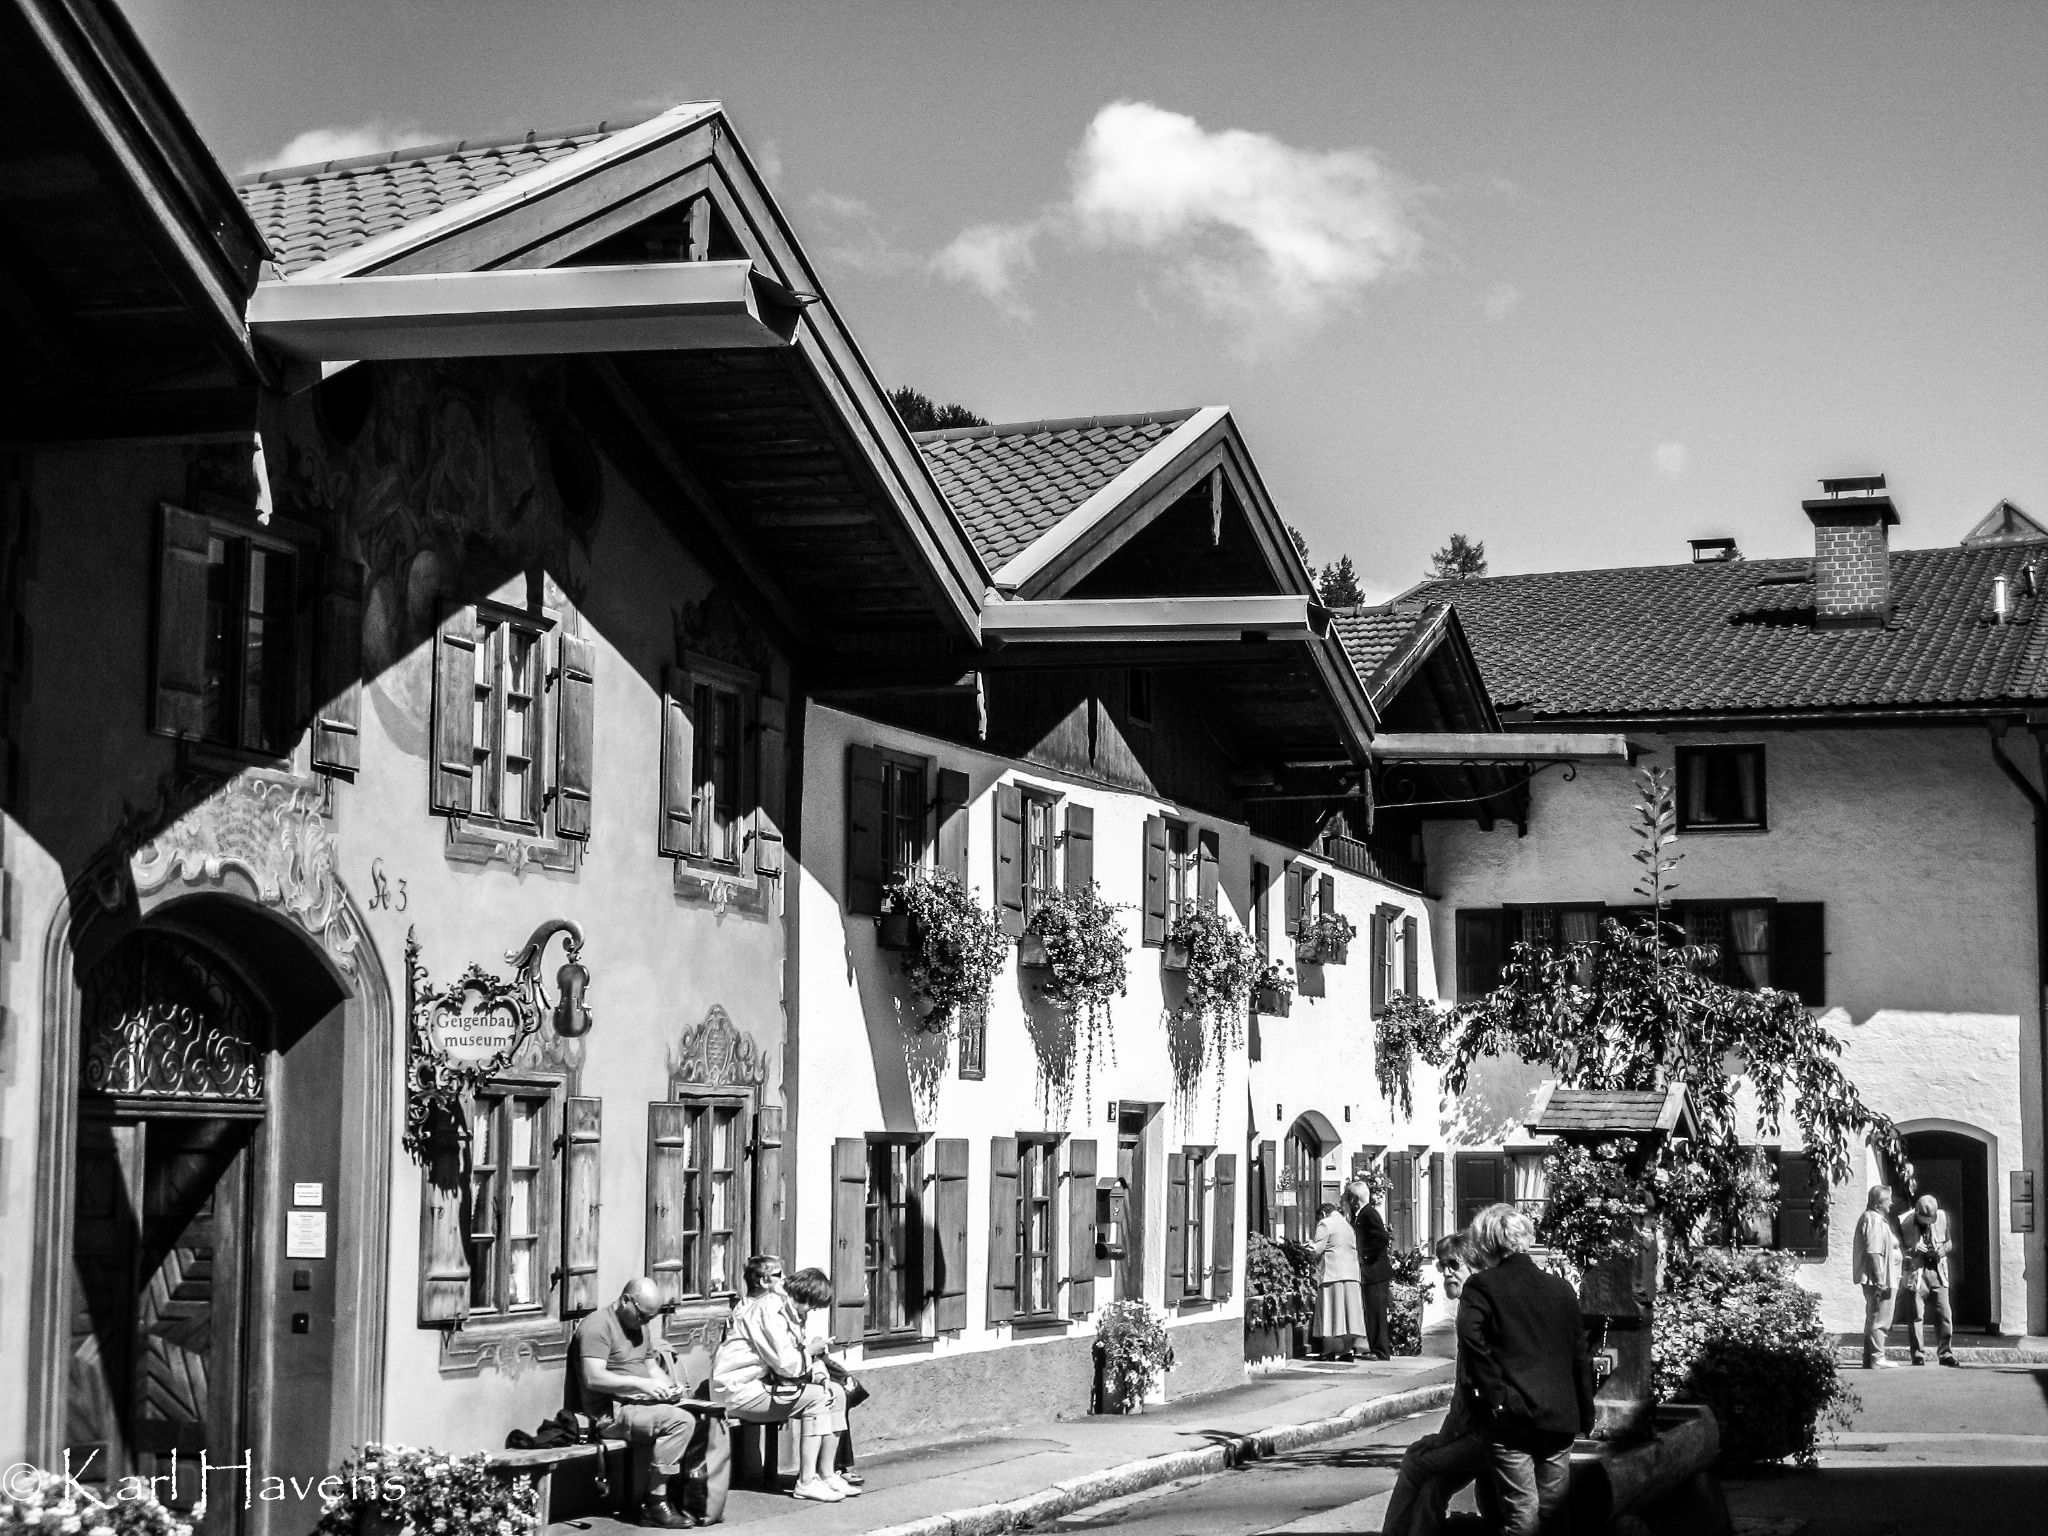 Village Gathering Place by karl.havens